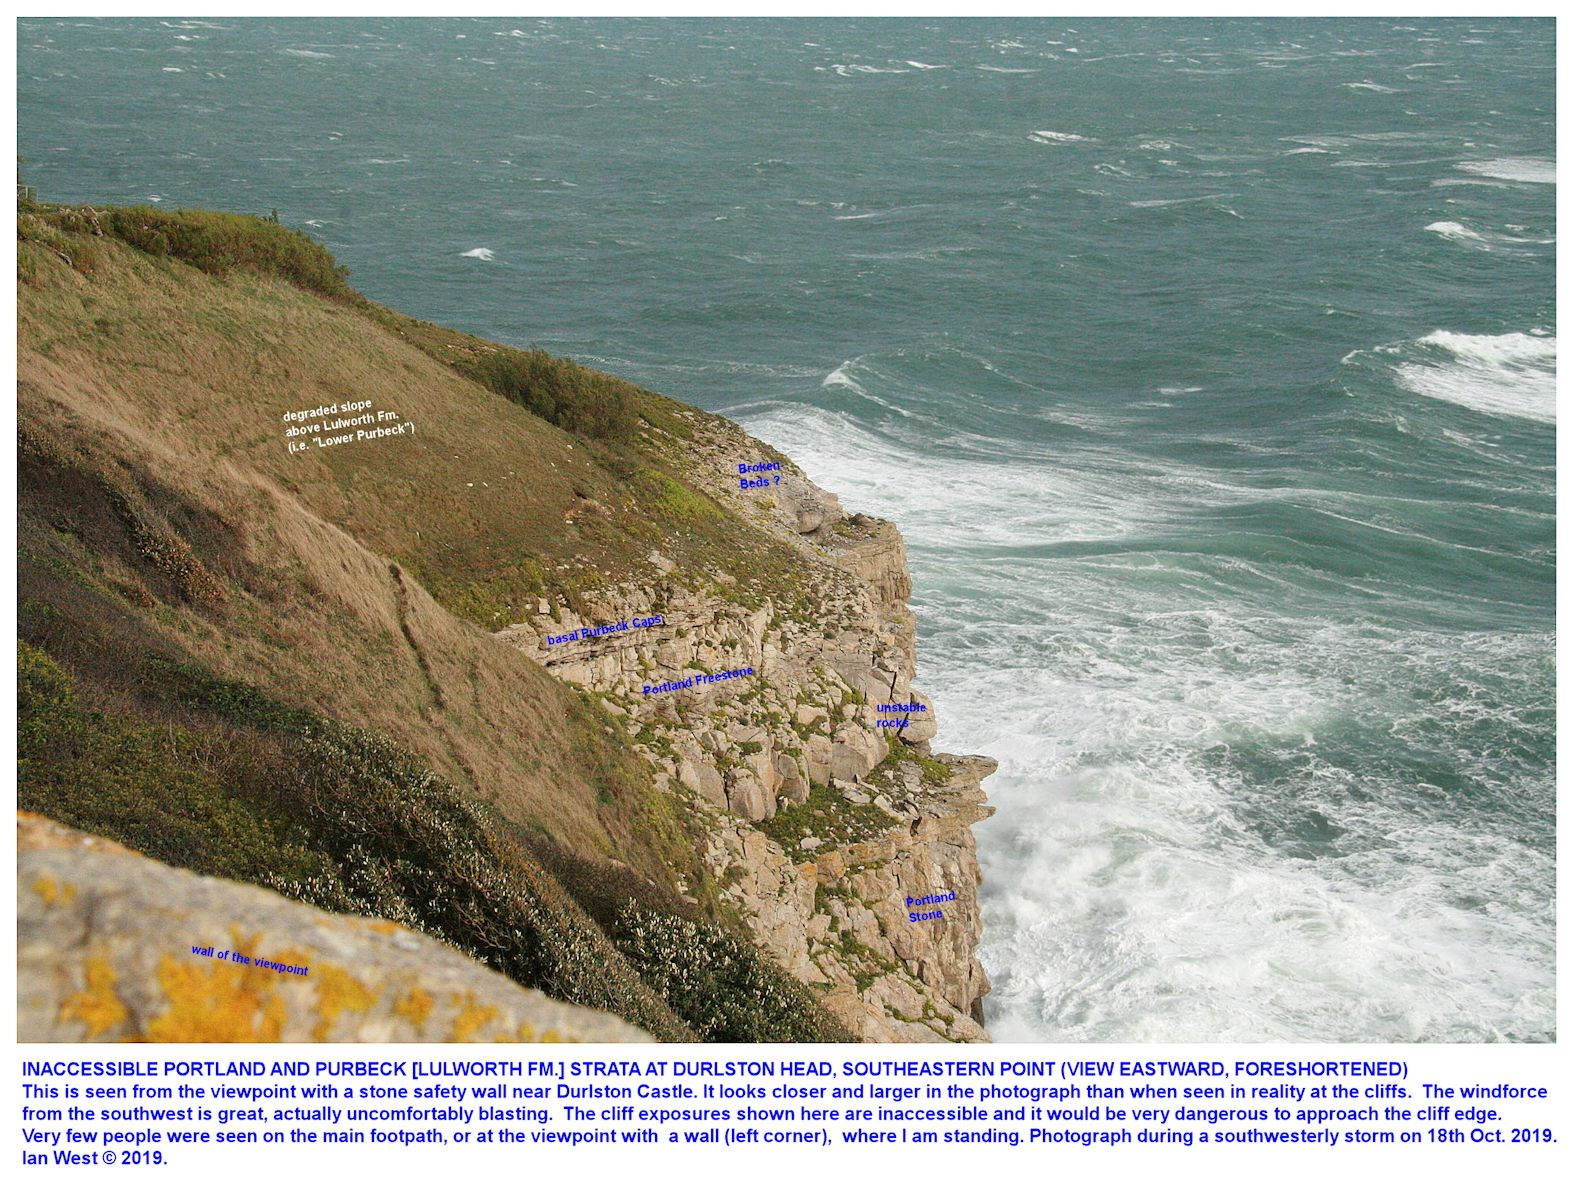 The cliff sequence of Portland and Purbeck or Lulworth Formation strata at Durlston Head, as seen eastward from the lookout or viewpoint in very stormy conditions, 18th October 2019, Ian West